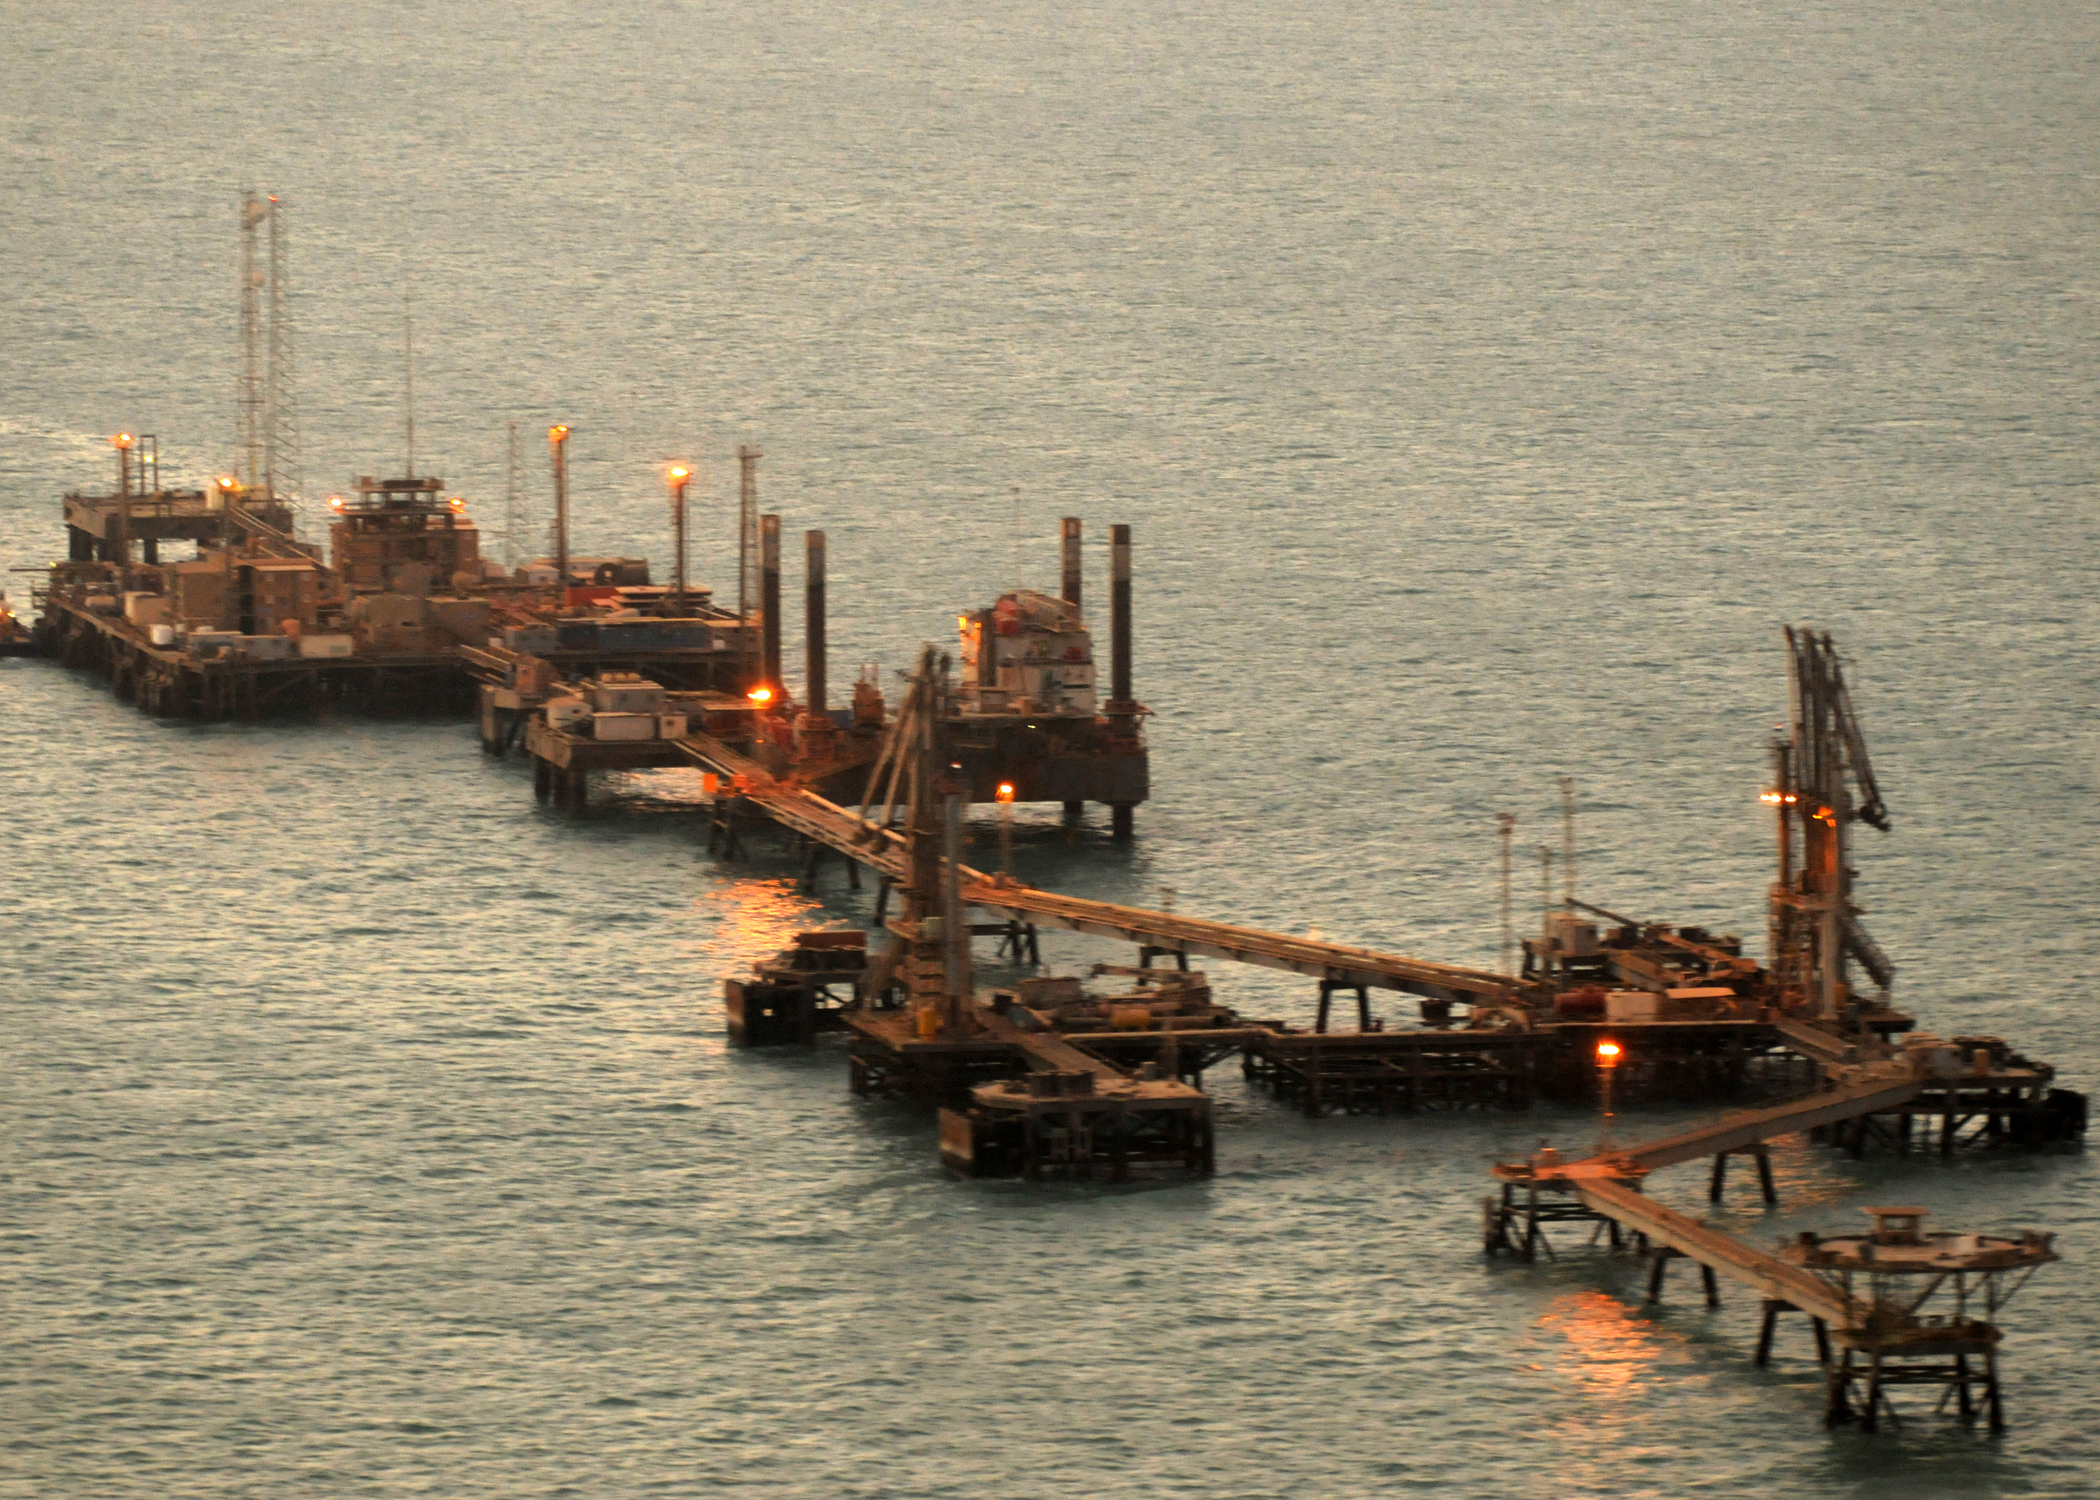 Iraq's_Khawr_Al_Amaya_Oil_Platform_(KAAOT)_just_after_sunrise.jpg